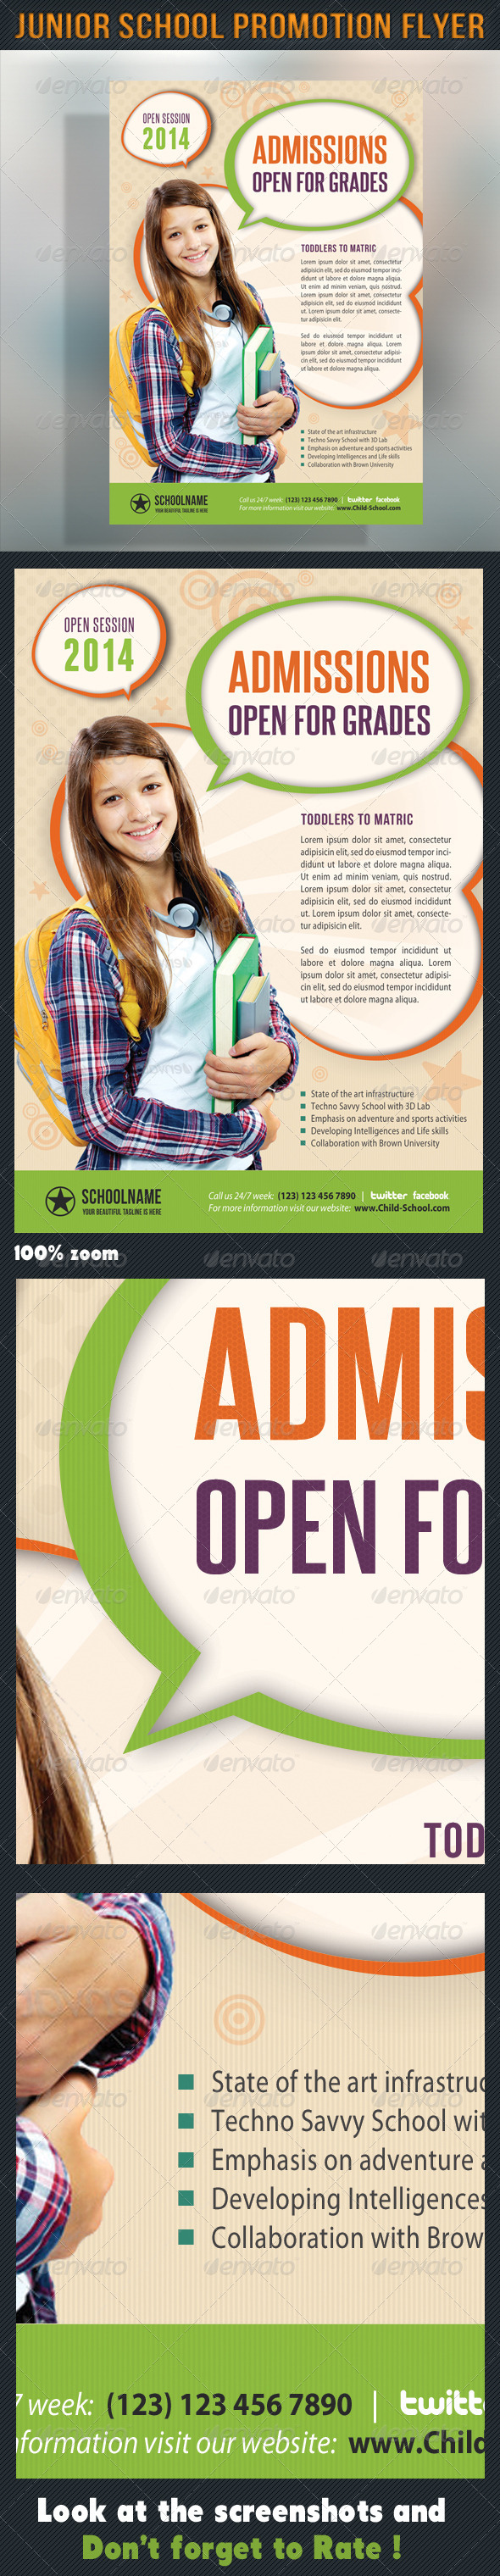 GraphicRiver Junior School Promotion Flyer 02 6903528